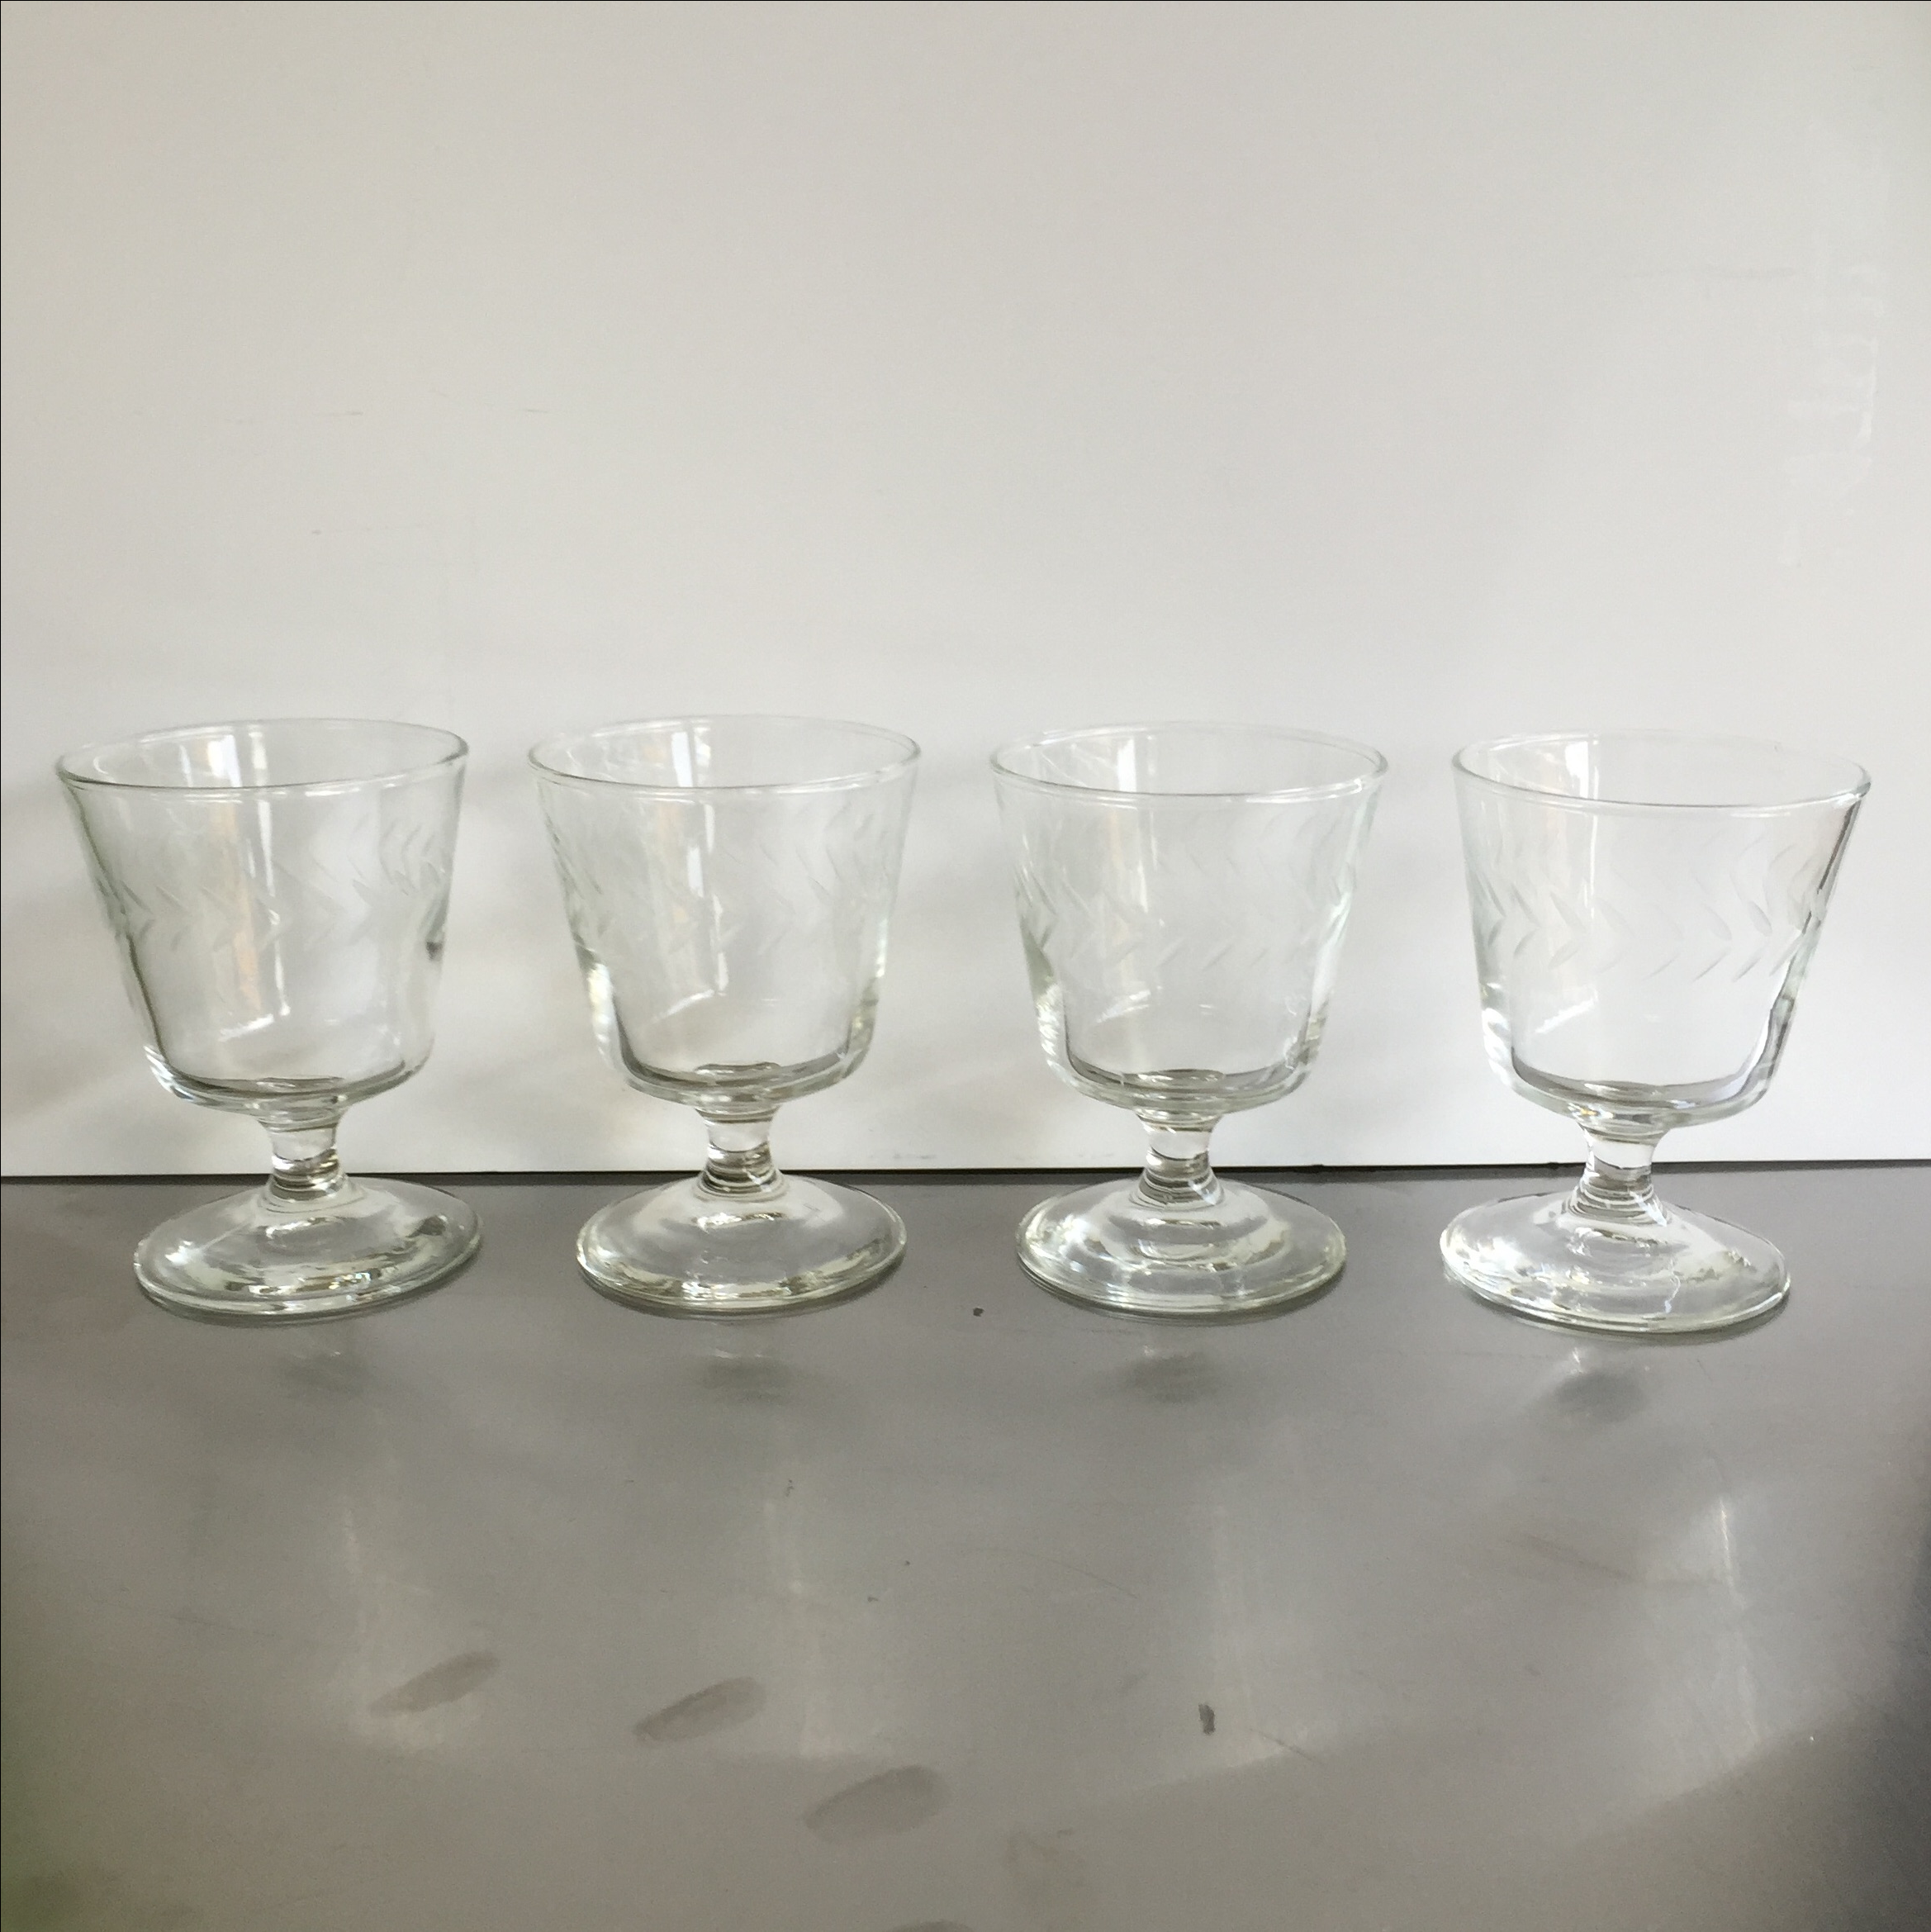 Laurel Wreath Champagne Glasses Set of 4 Chairish : laurel wreath champagne glasses set of 4 3505aspectfitampwidth640ampheight640 from www.chairish.com size 640 x 640 jpeg 28kB